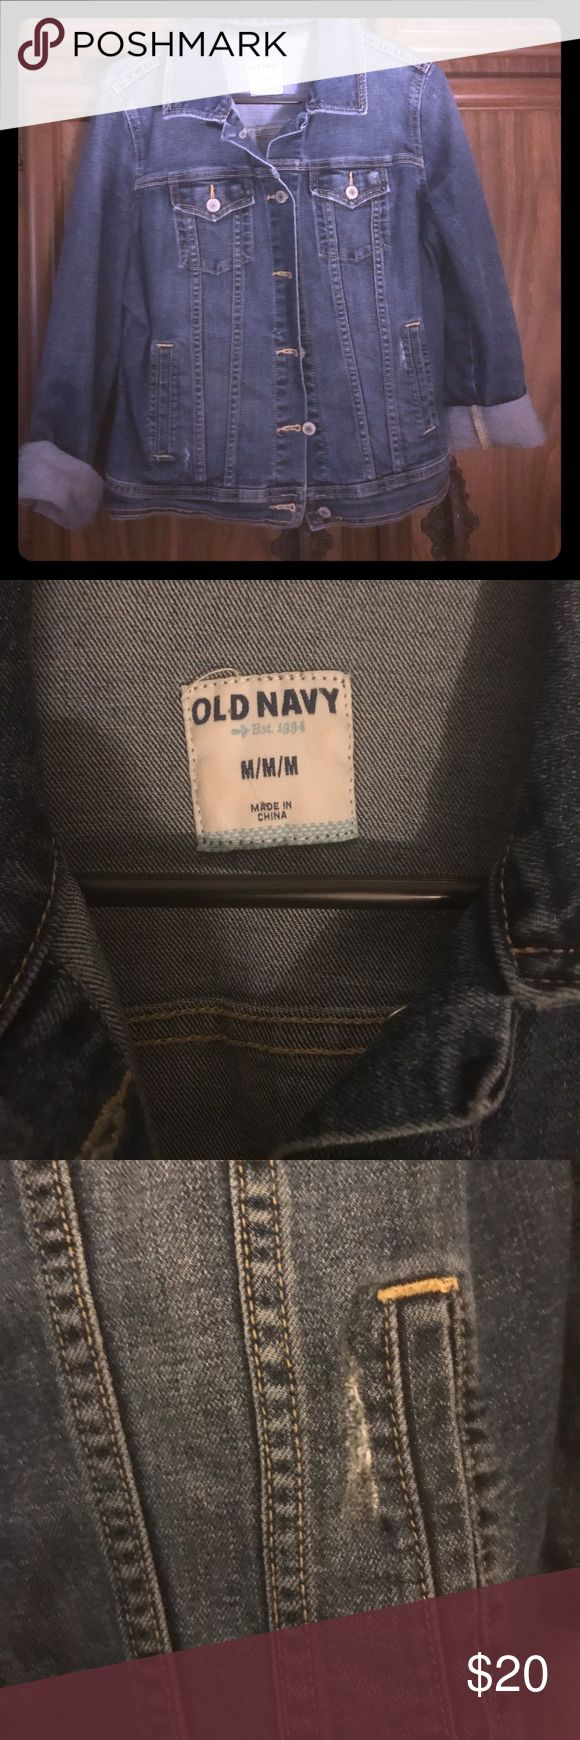 Medium Old Navy Jean Jacket This is a great used condition Old Navy Jean jacket - the jacket has intentional wearing as pictured in pics 3 & 4. This is a STEAL and perfect for fall. Old Navy Jackets & Coats Jean Jackets